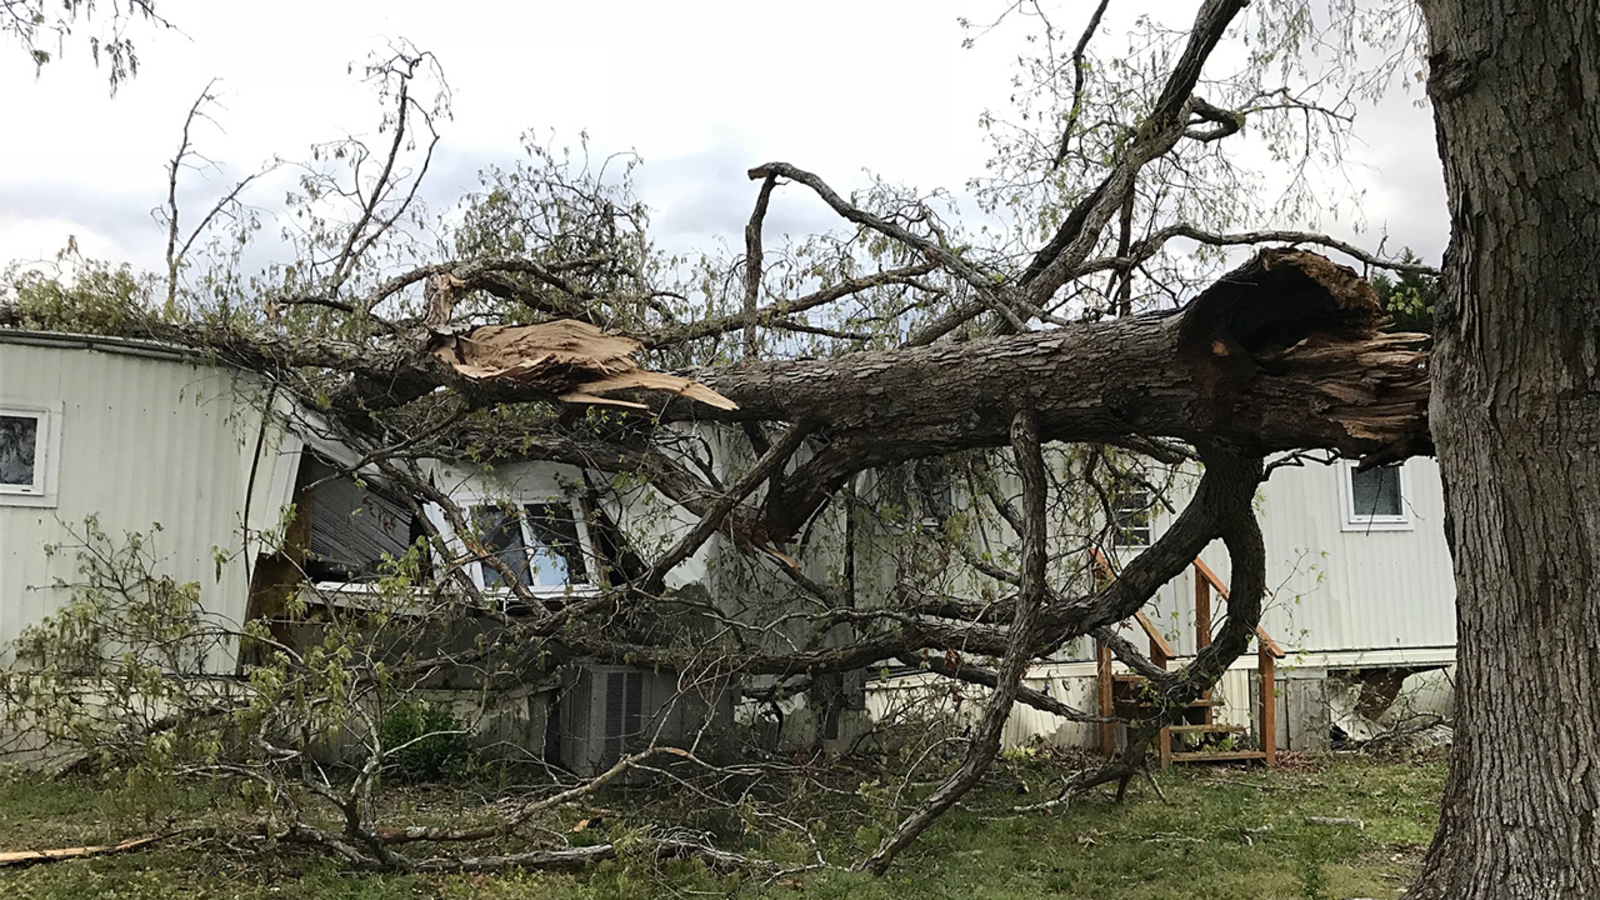 Nws Confirms Ef1 Tornado Touched Down In Wendell Abc11 Com